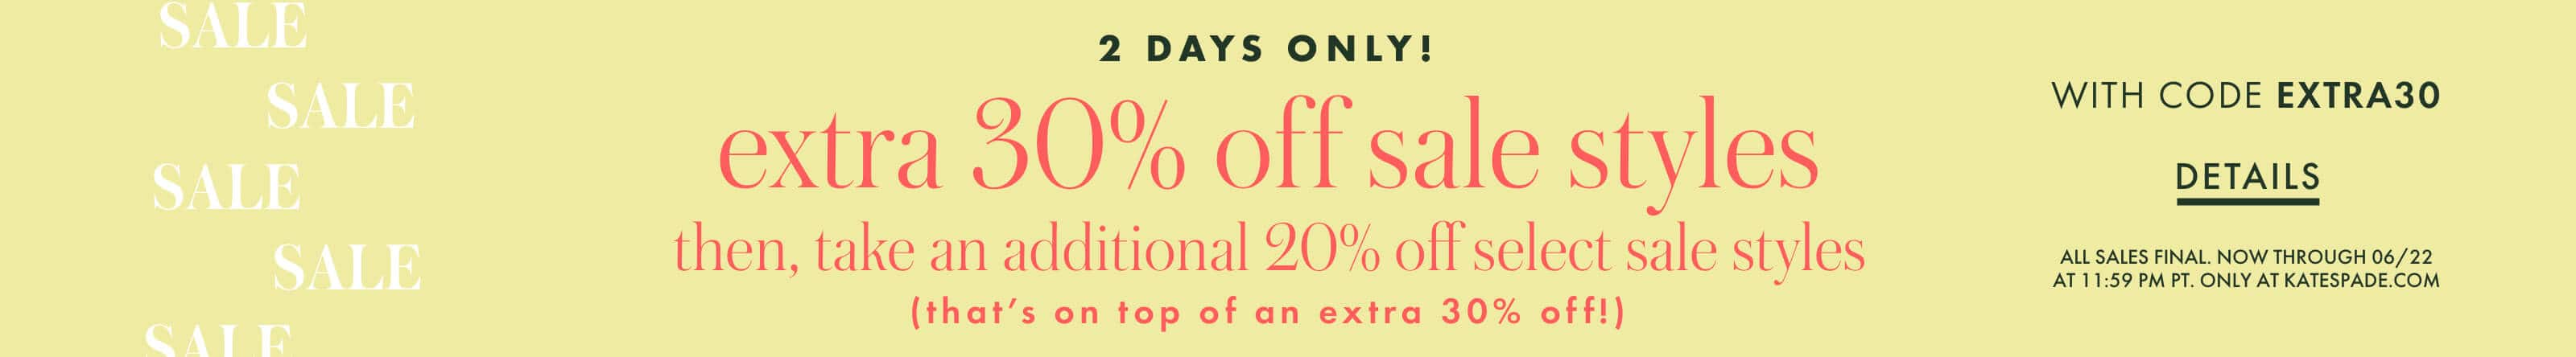 2 days only! extra 30% off sale styles then, take an additional 20% off select sale styles (that's on top of an extra 30% off!)with code extra30. all sales final. ends 06/24 at 11:59 pm pt. in our stores and at katespade.com. details.